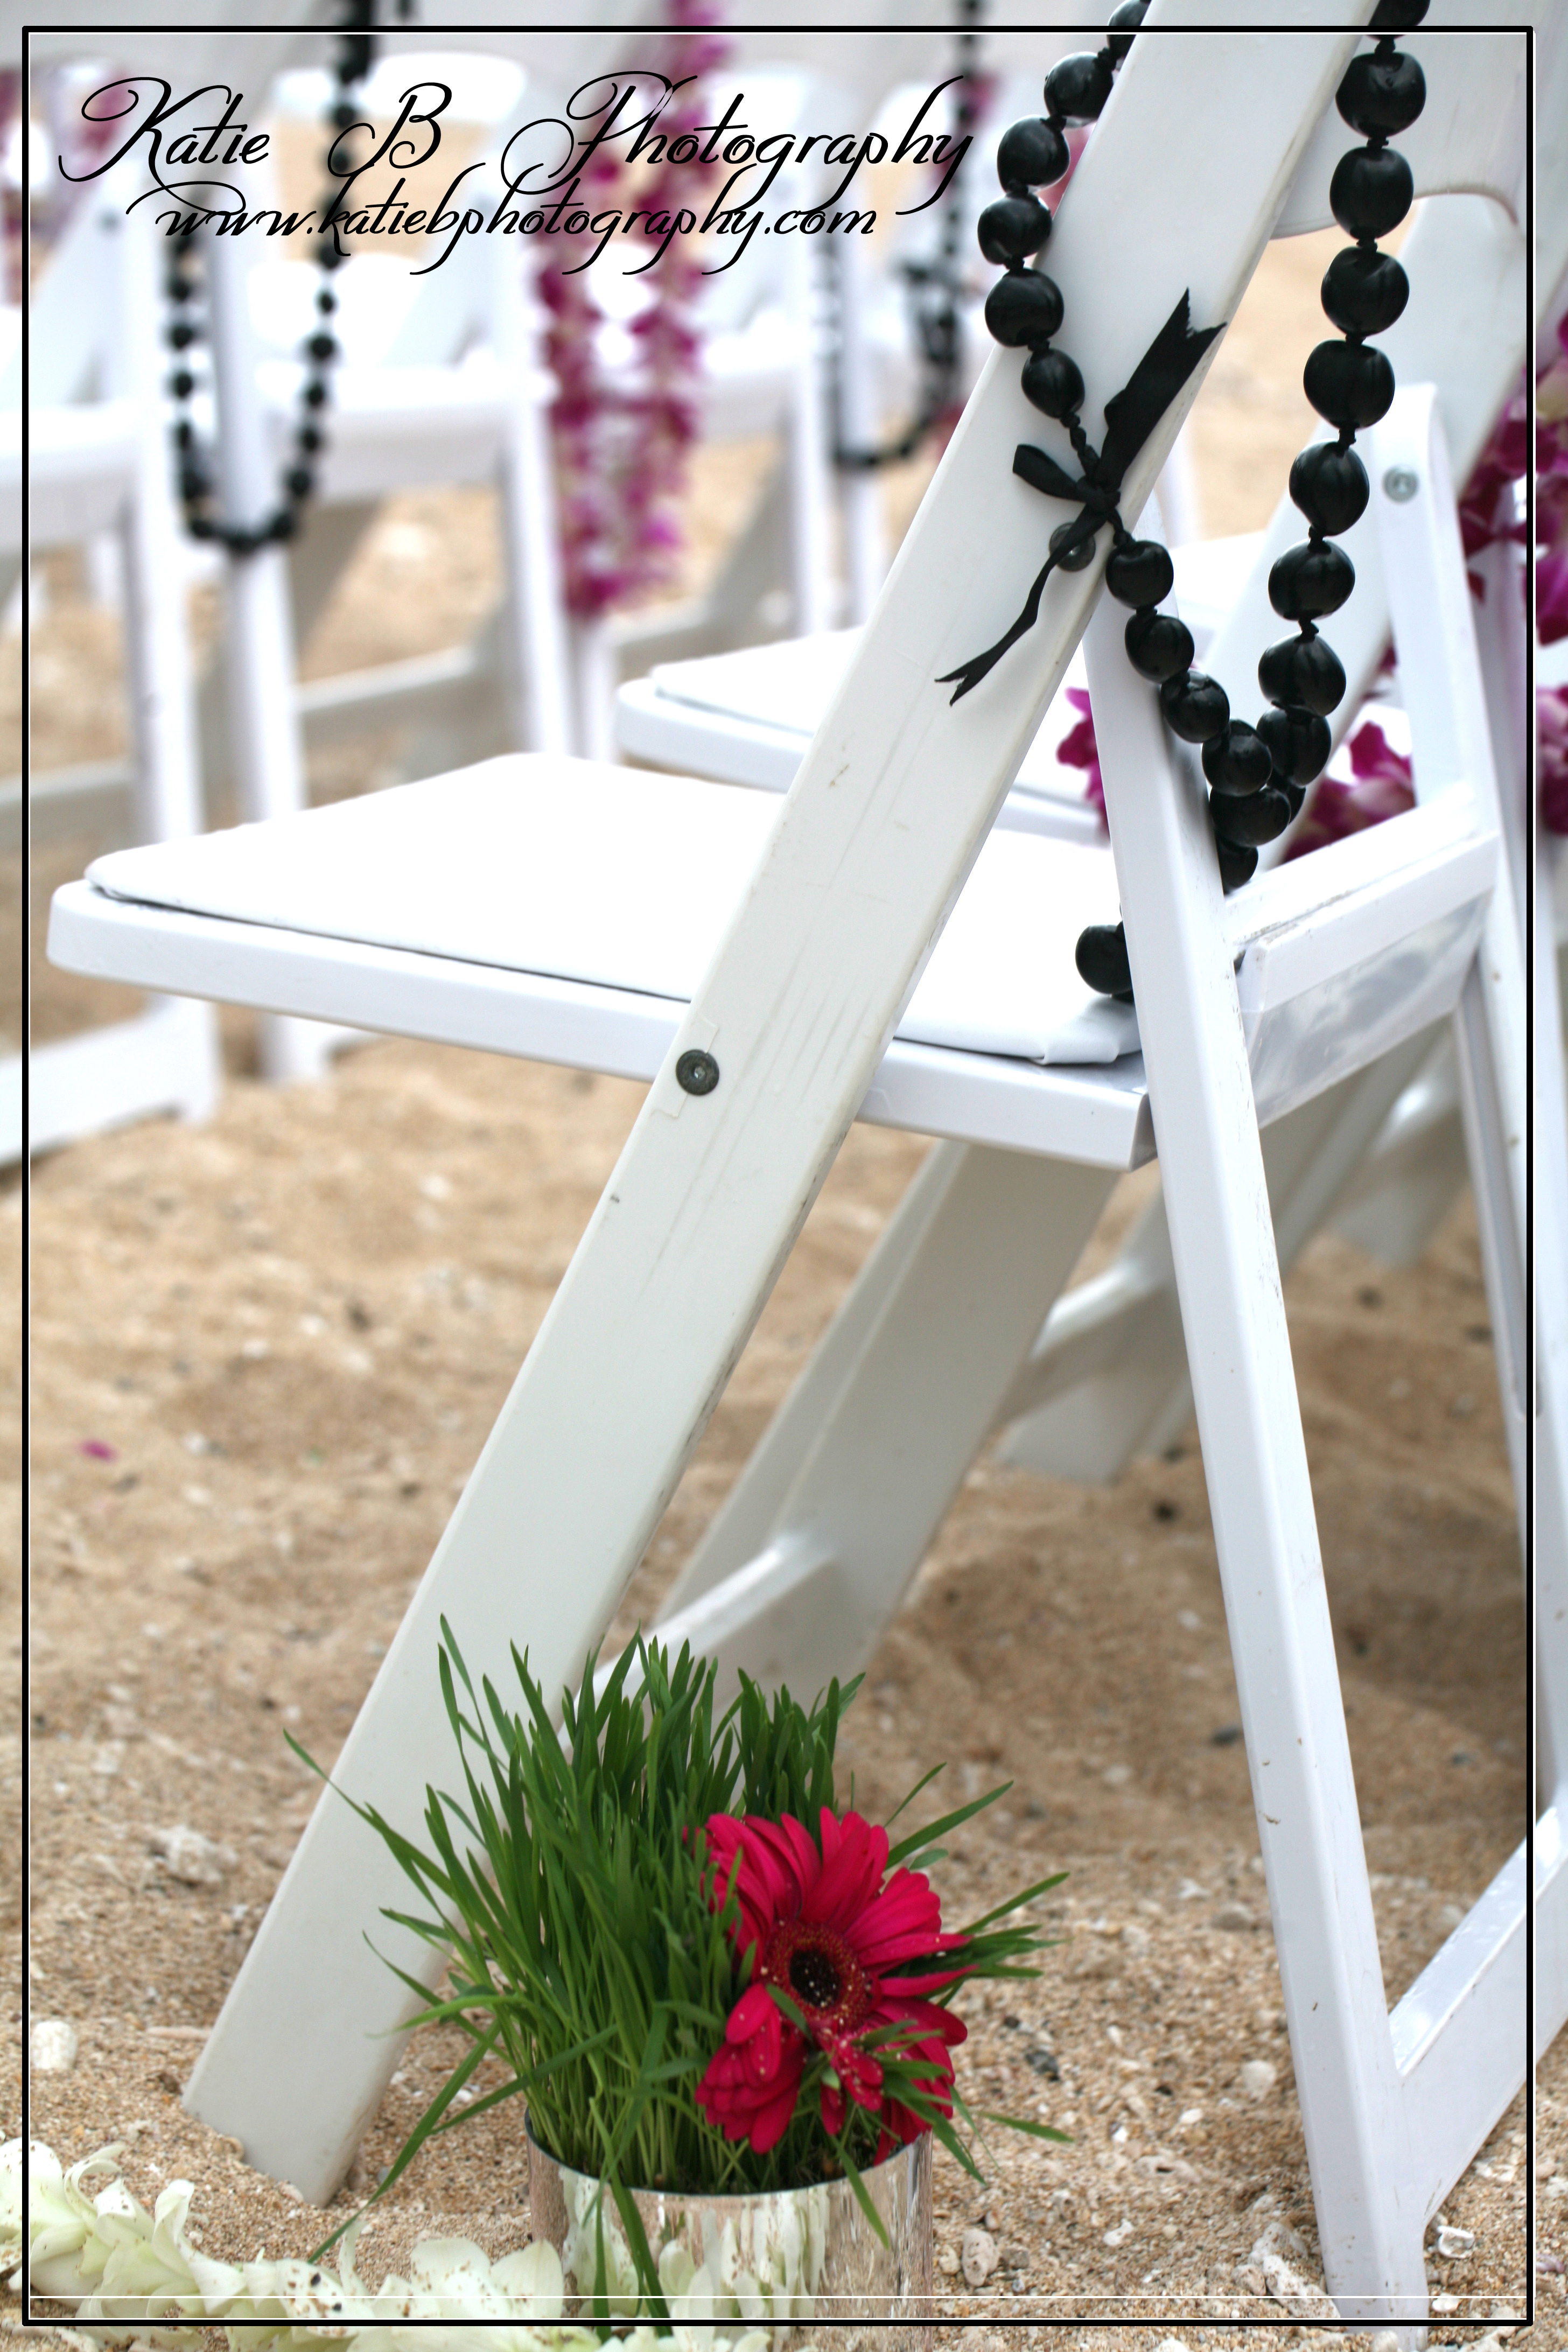 Ceremony, Flowers & Decor, Destinations, white, pink, Hawaii, Ceremony Flowers, Flowers, Orchid, Chair, Leis, Gerber, Katie b photography, Kukui